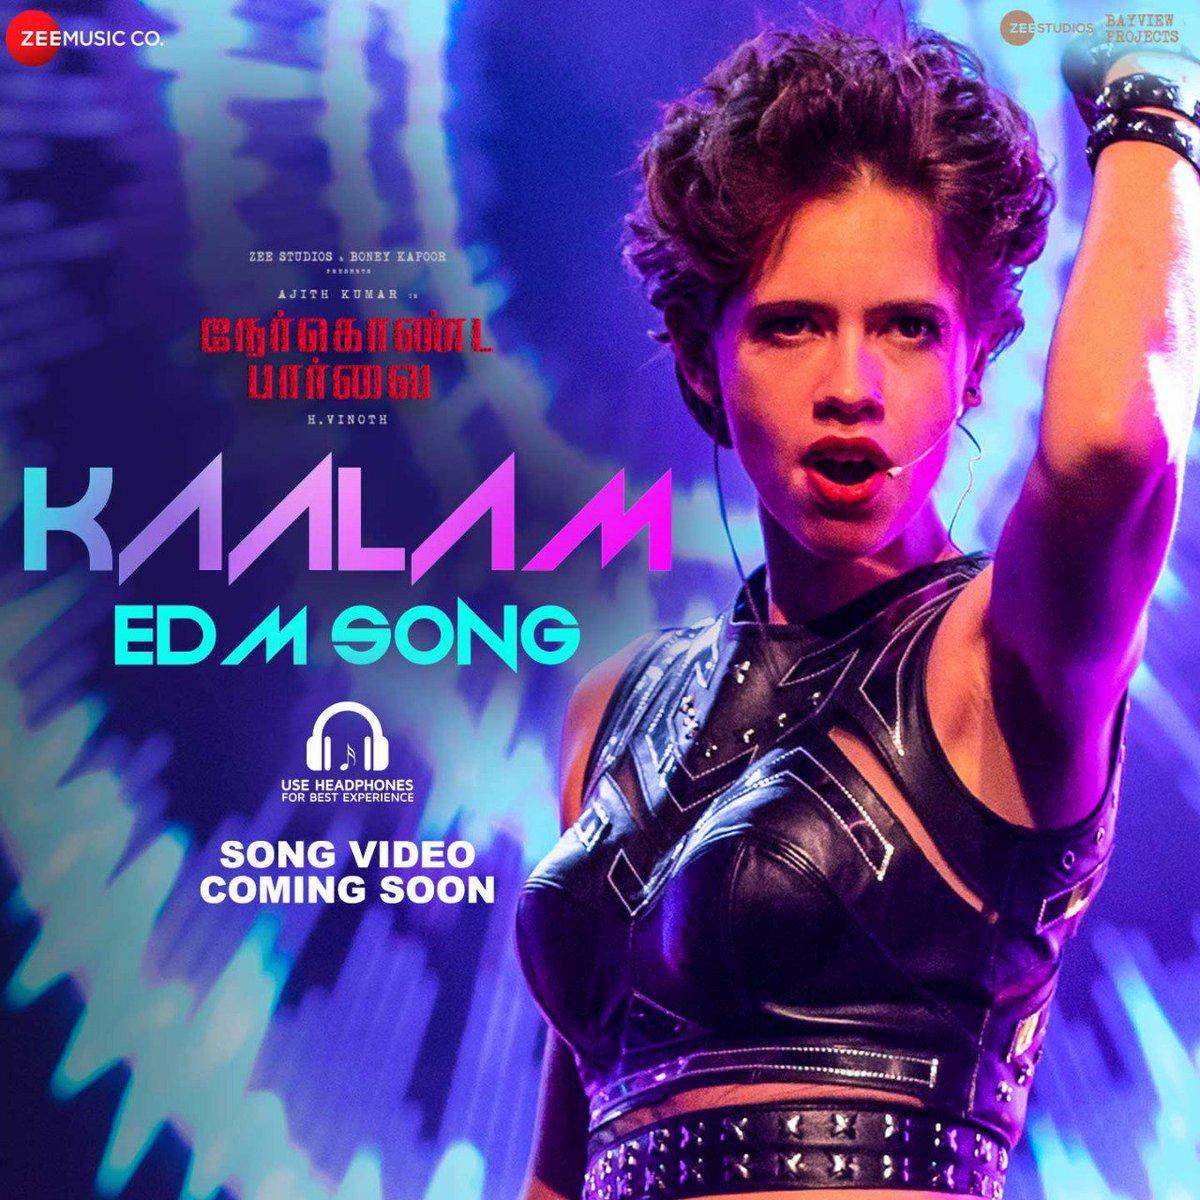 Peppy EDM Song #Kaalam Video Song From #Nerkondapaarvai will Be Out Today...<br>http://pic.twitter.com/yd7s5ZjRzg